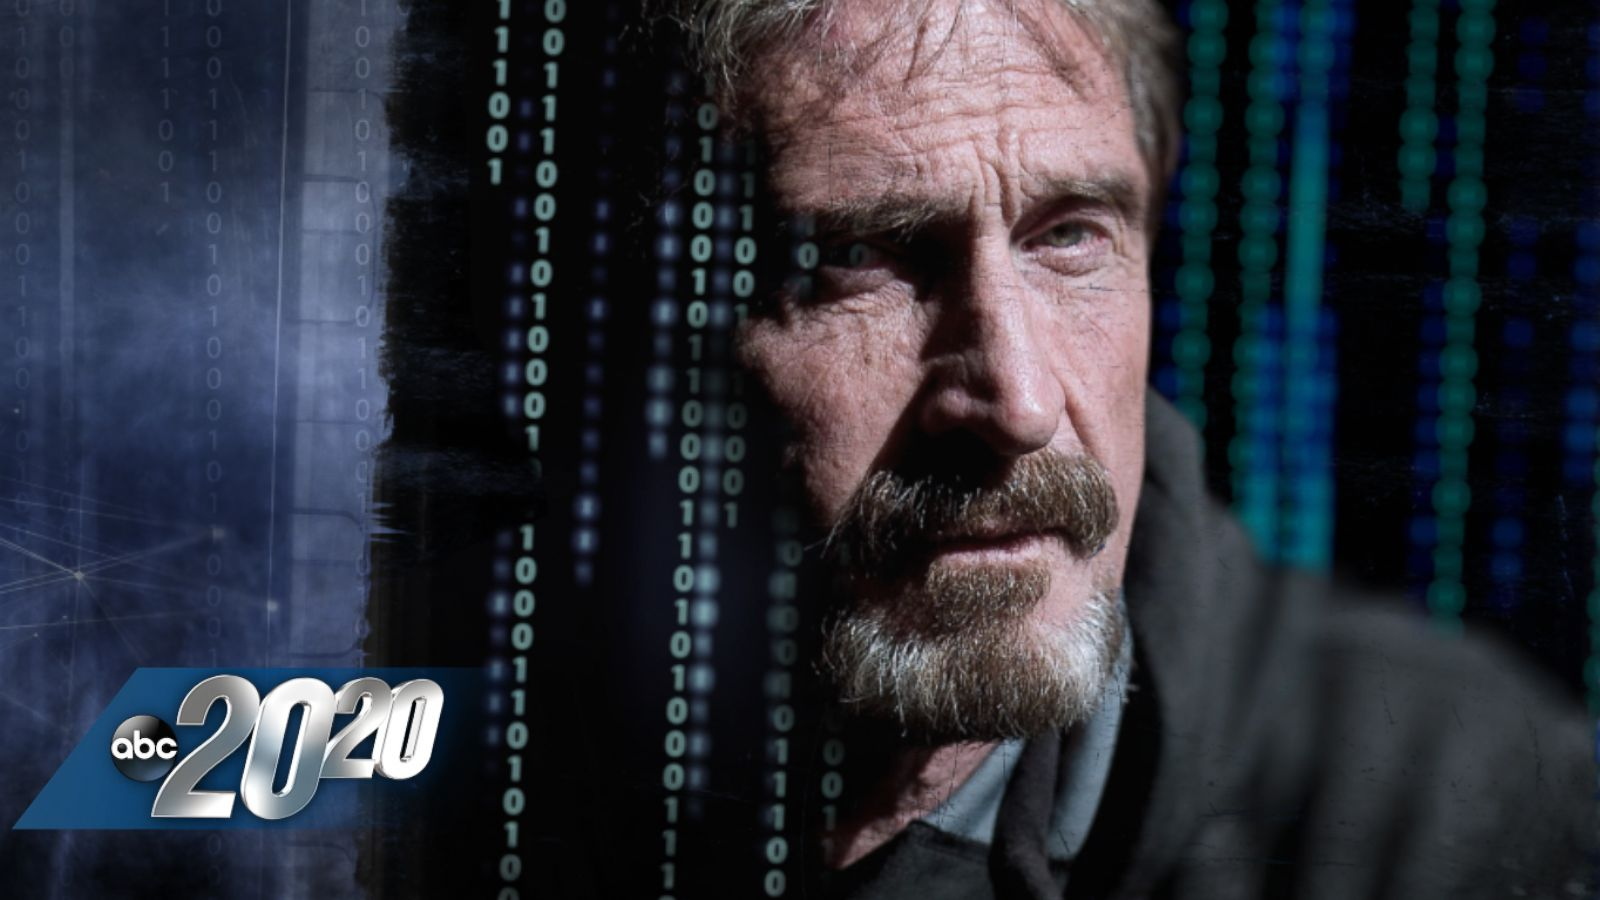 The rise, and fall, and rise of John McAfee, from tech pioneer to